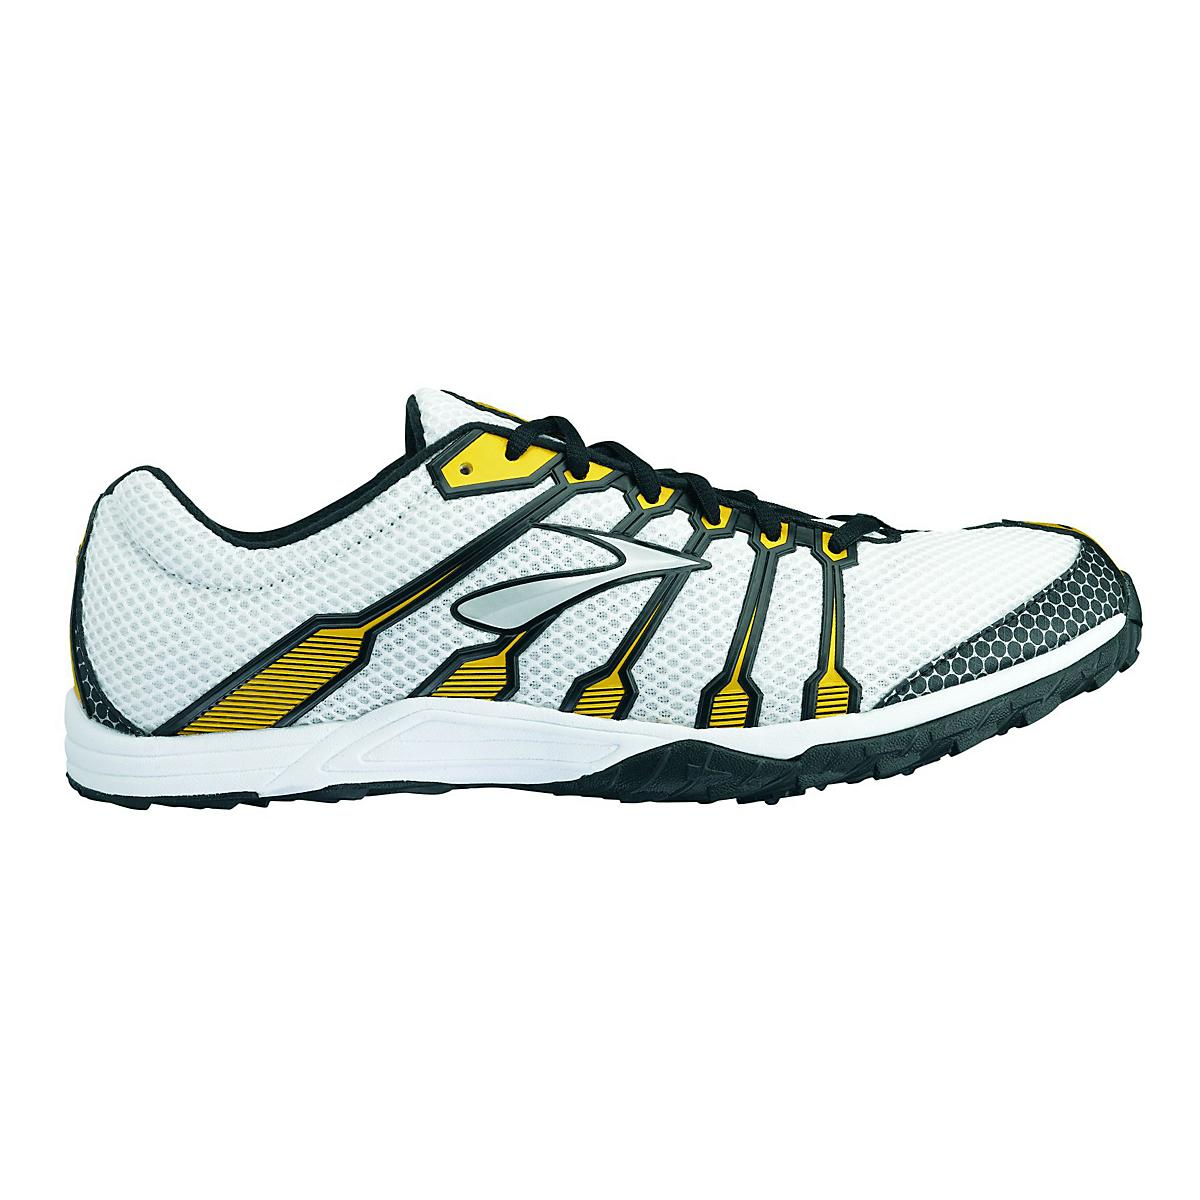 8b5f98a57bc Mens Brooks Mach 9 Spikeless Cross Country Shoe at Road Runner Sports